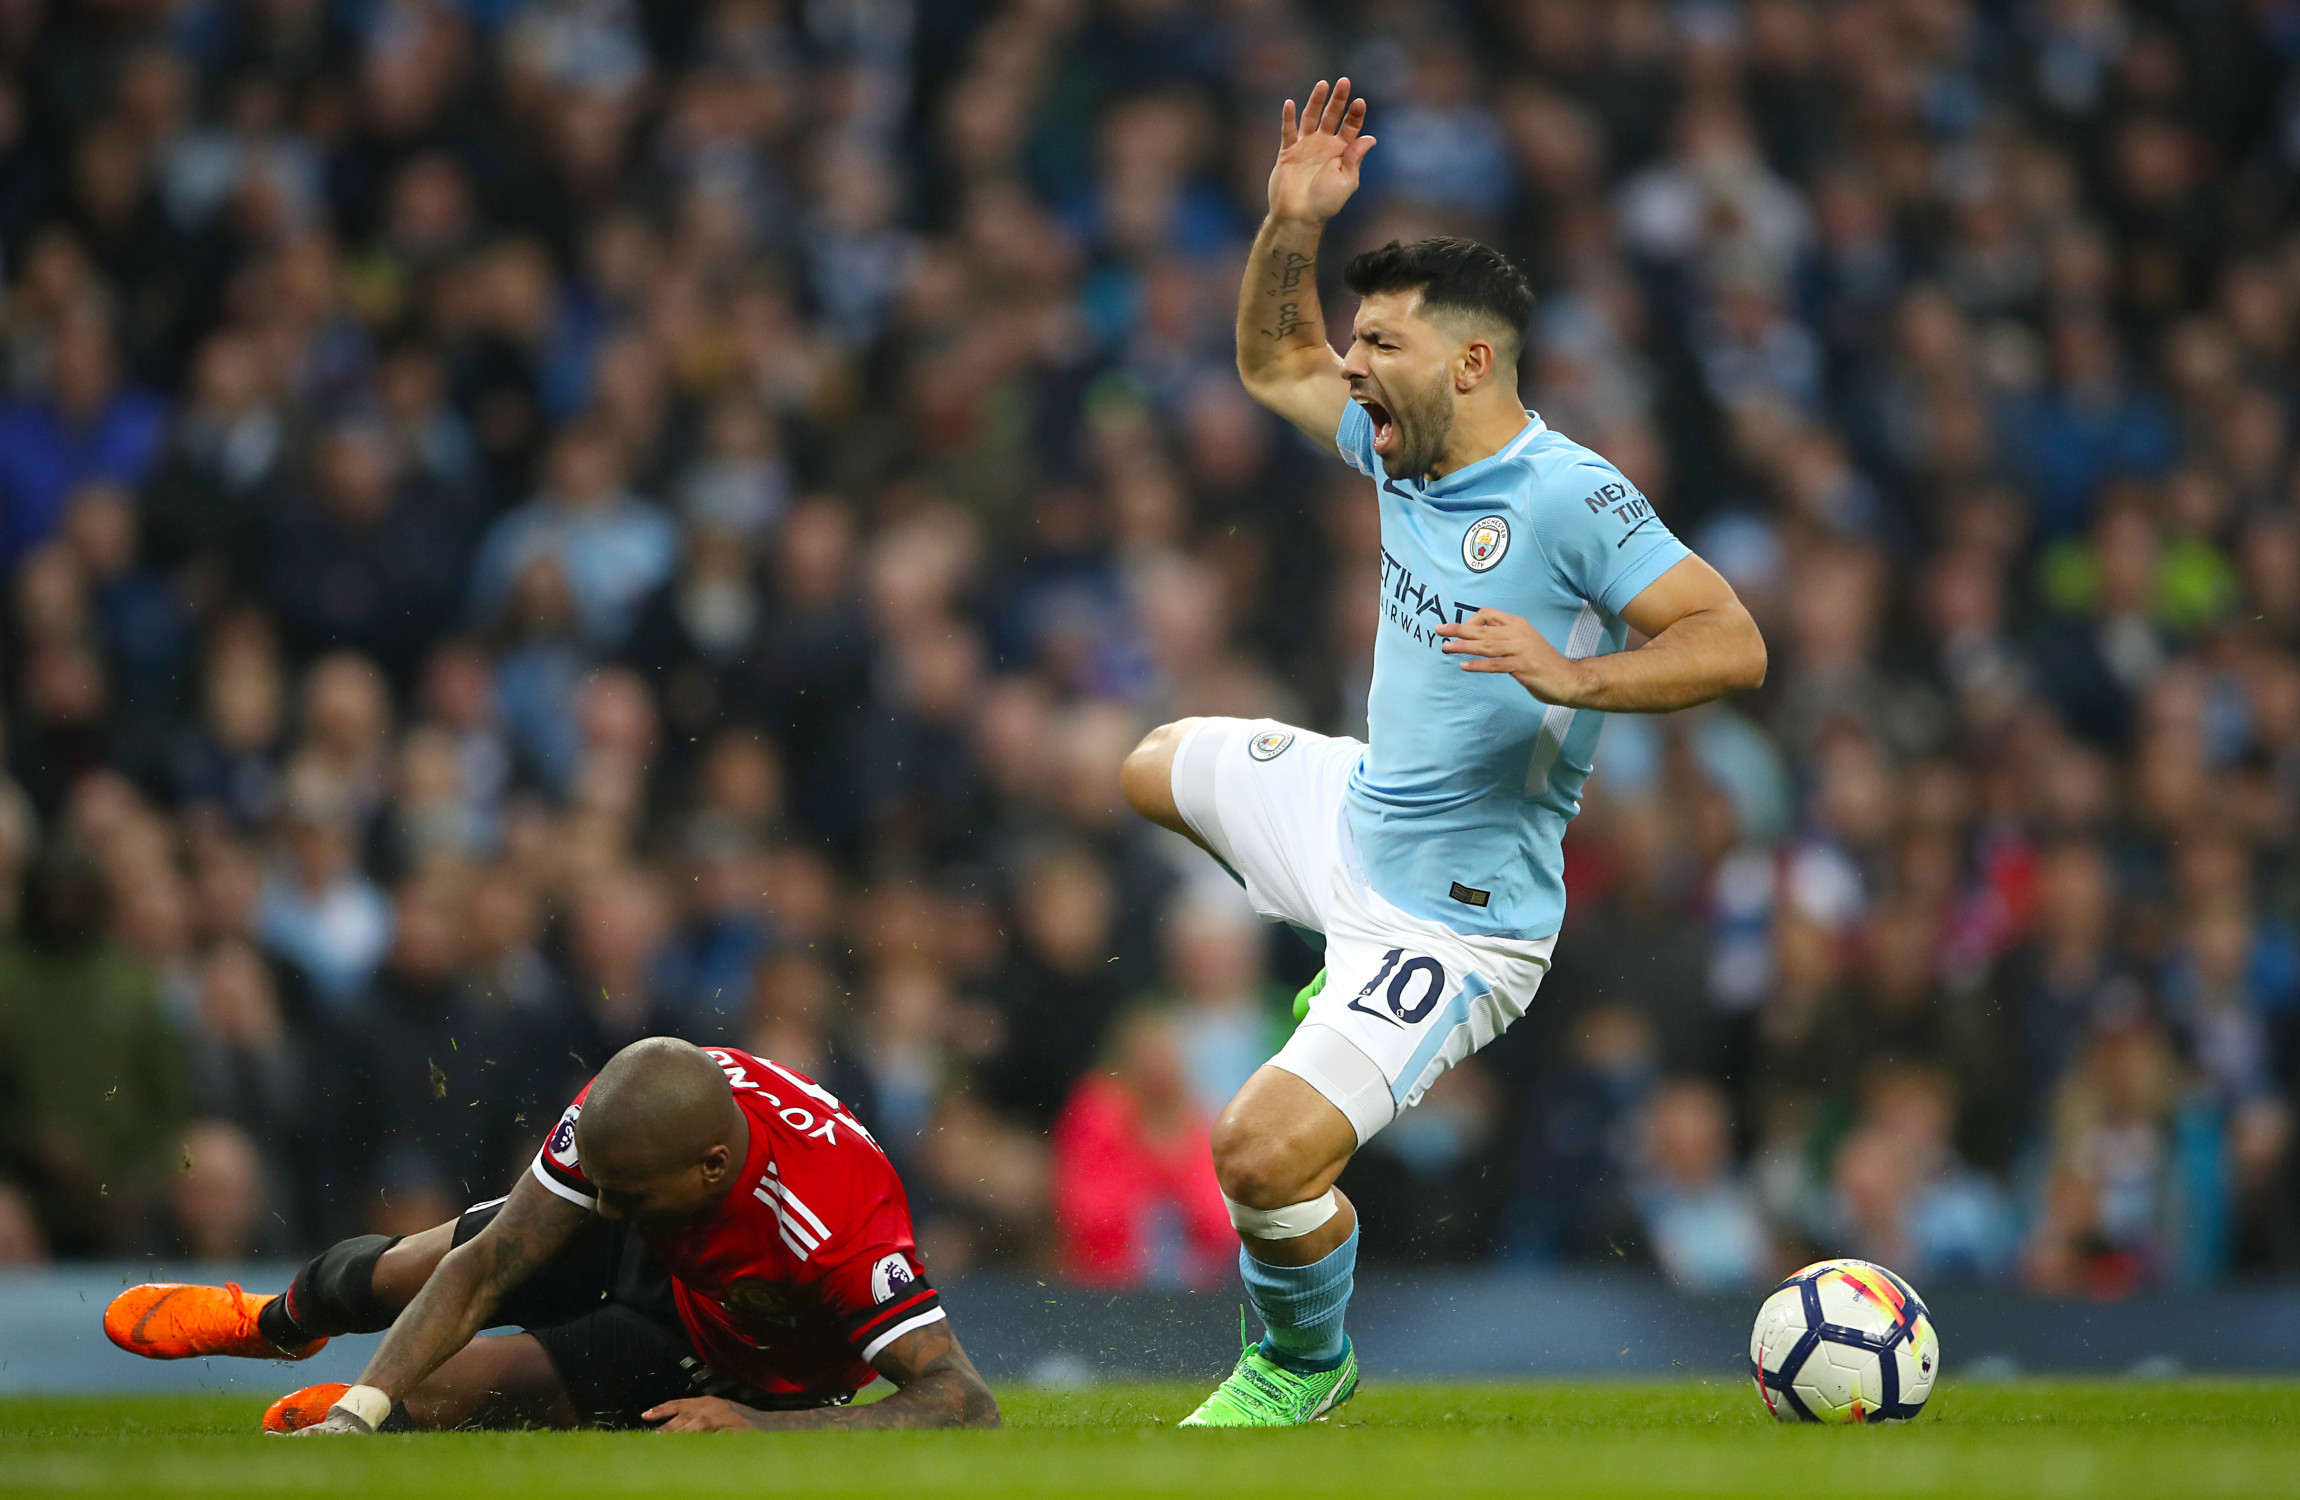 Sergio Aguero set to miss rest of season for Manchester City